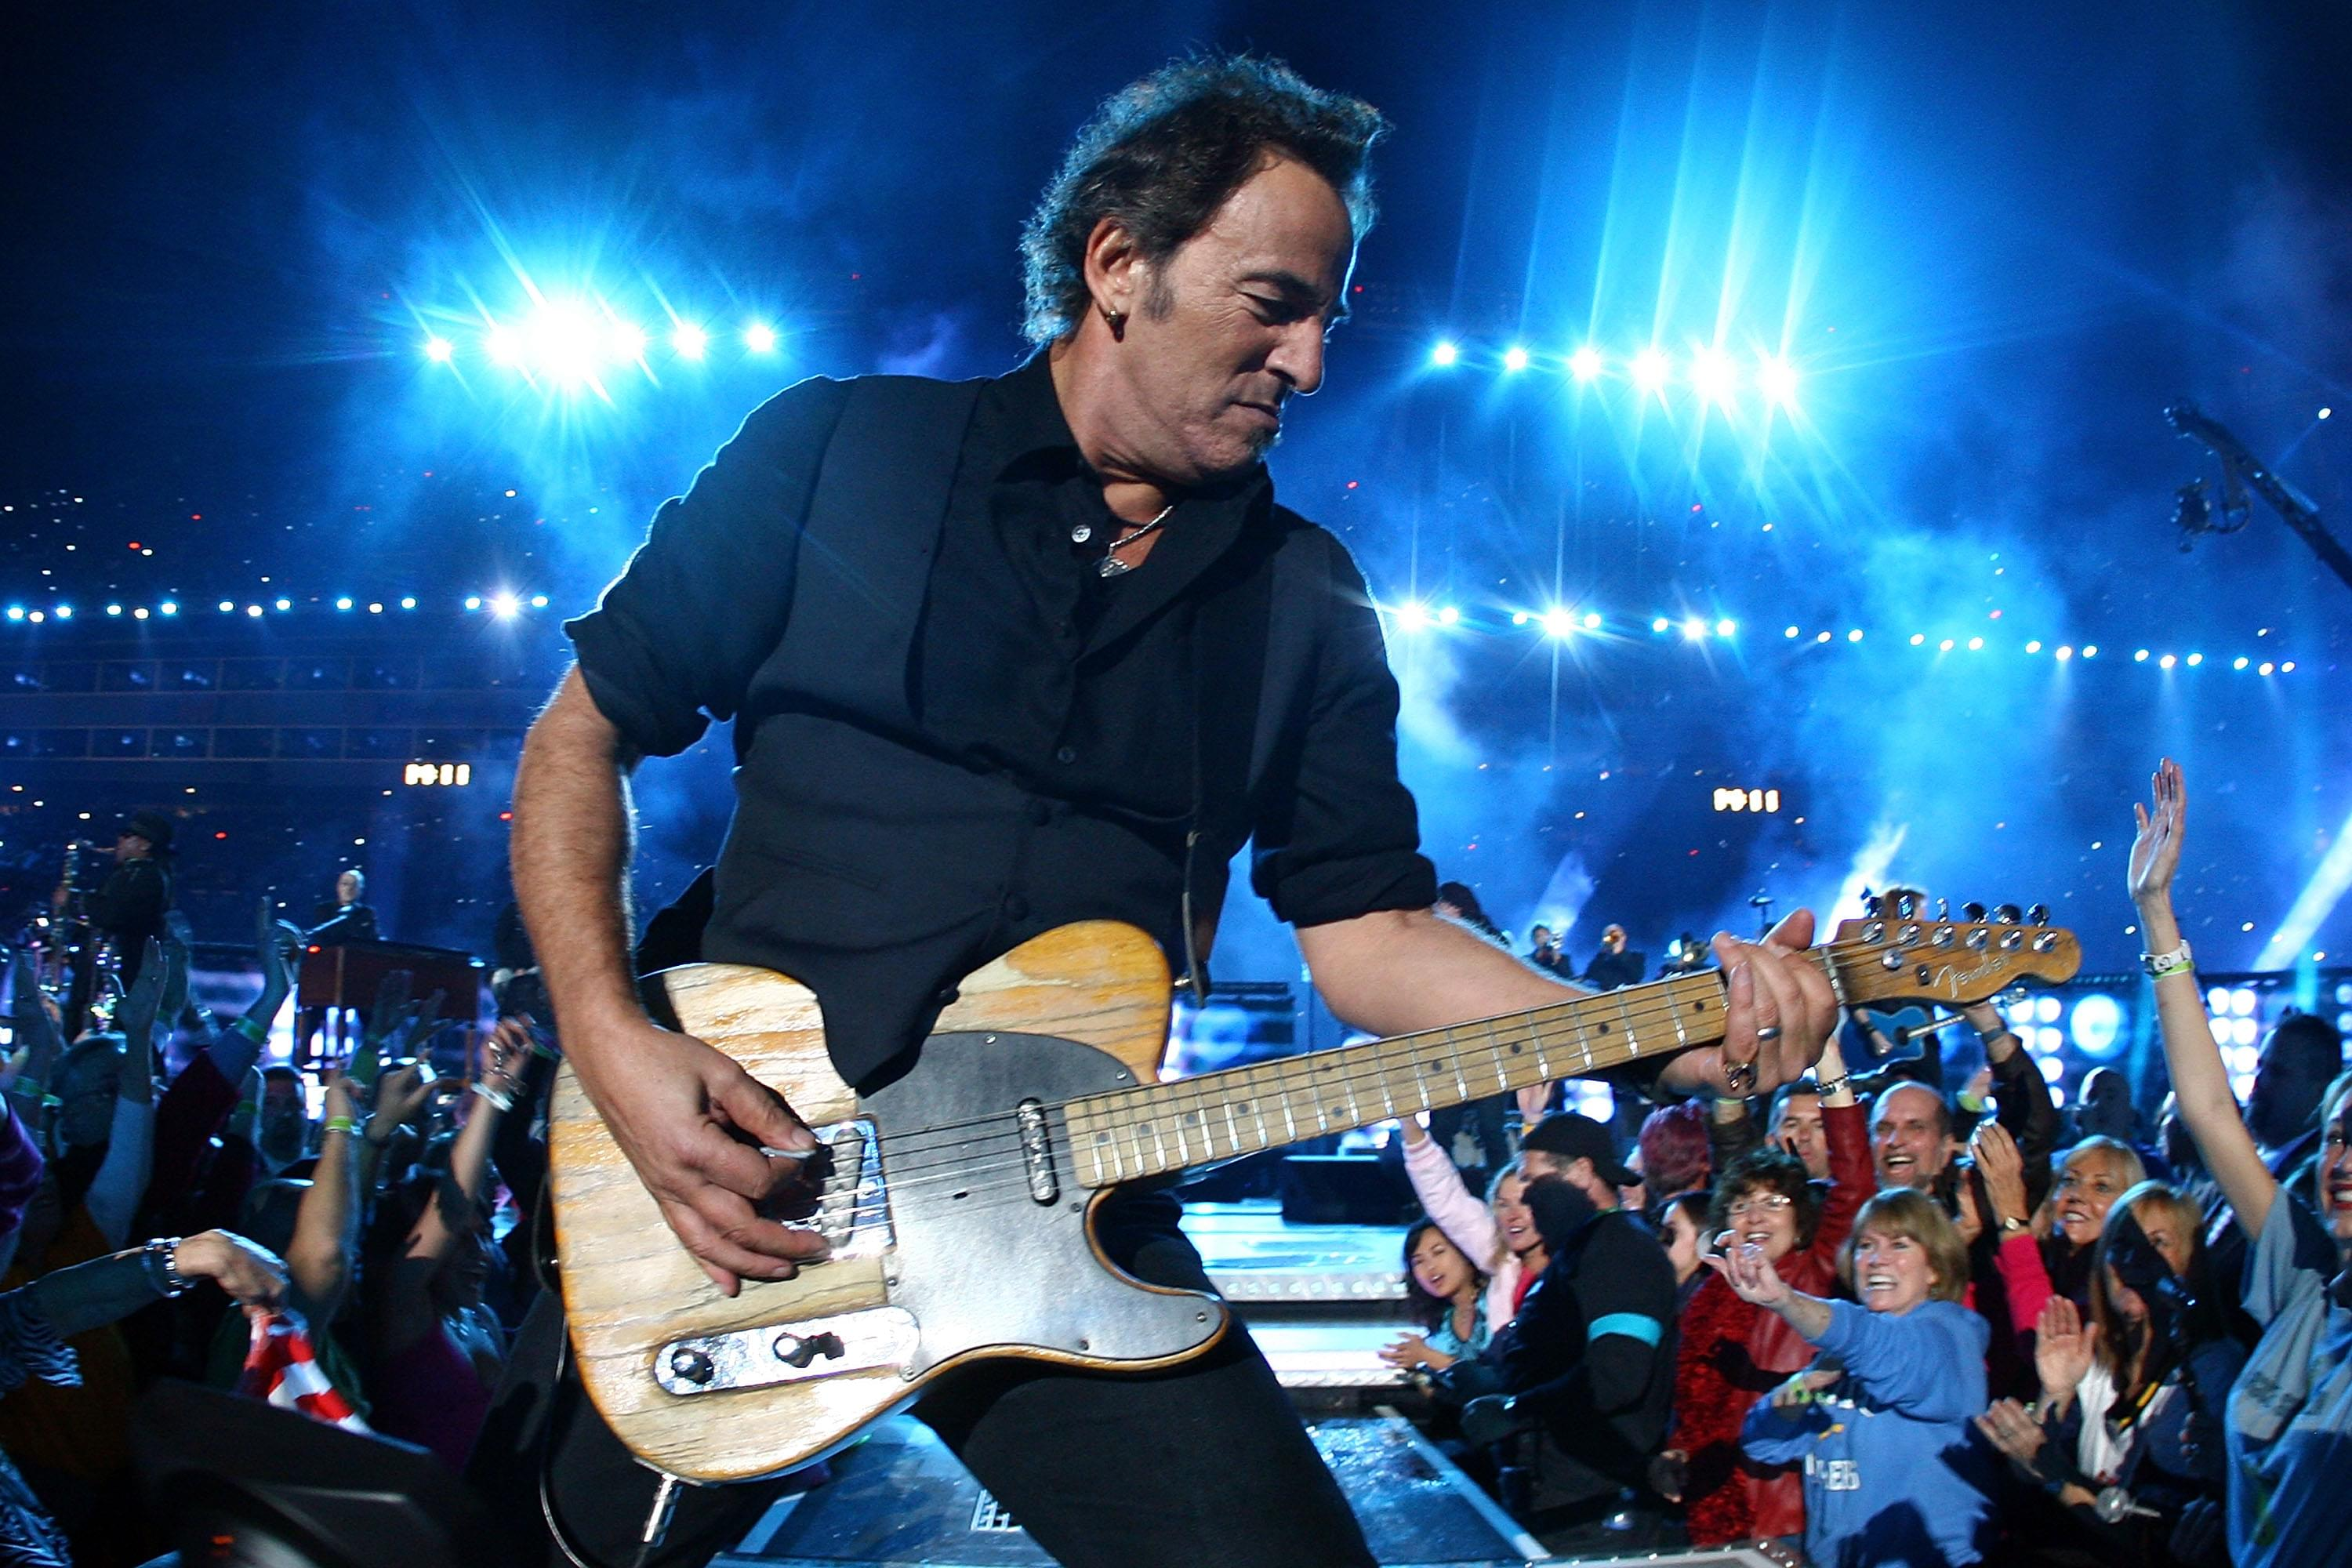 Bruce Springsteen offers up Hyde Park Concert online to help with 'social distancing'